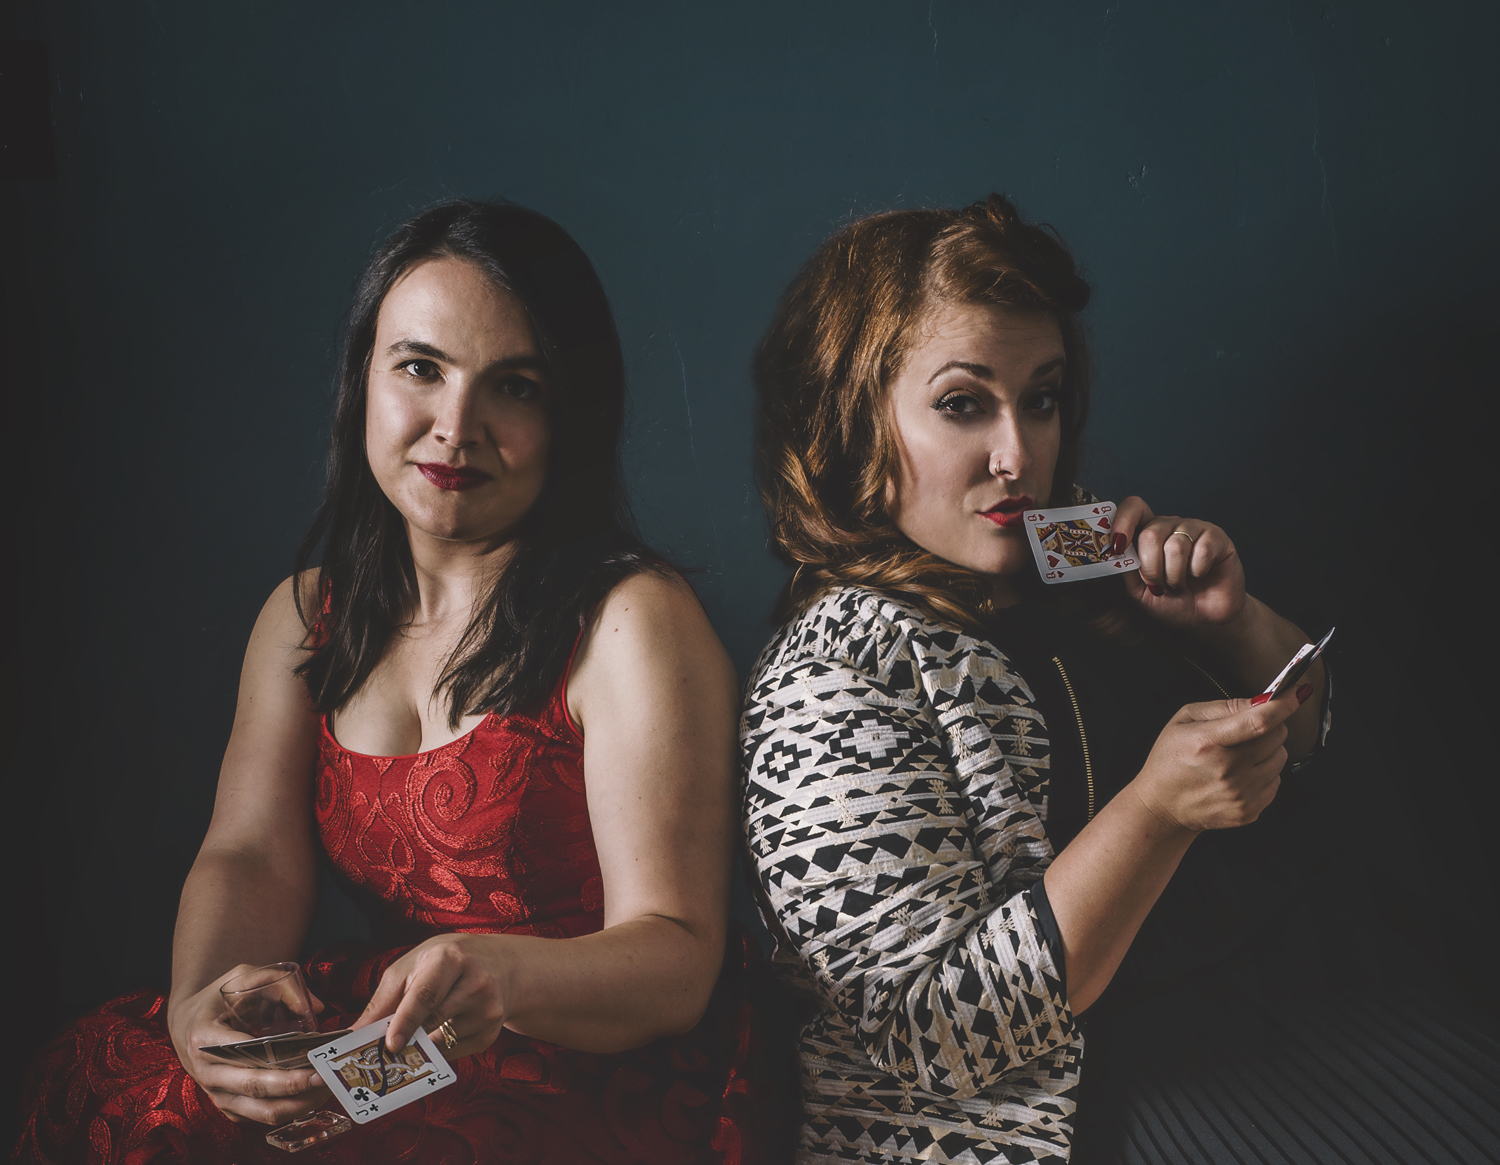 3x3: The Sweetback Sisters on Pickles, Planes, and Priscilla